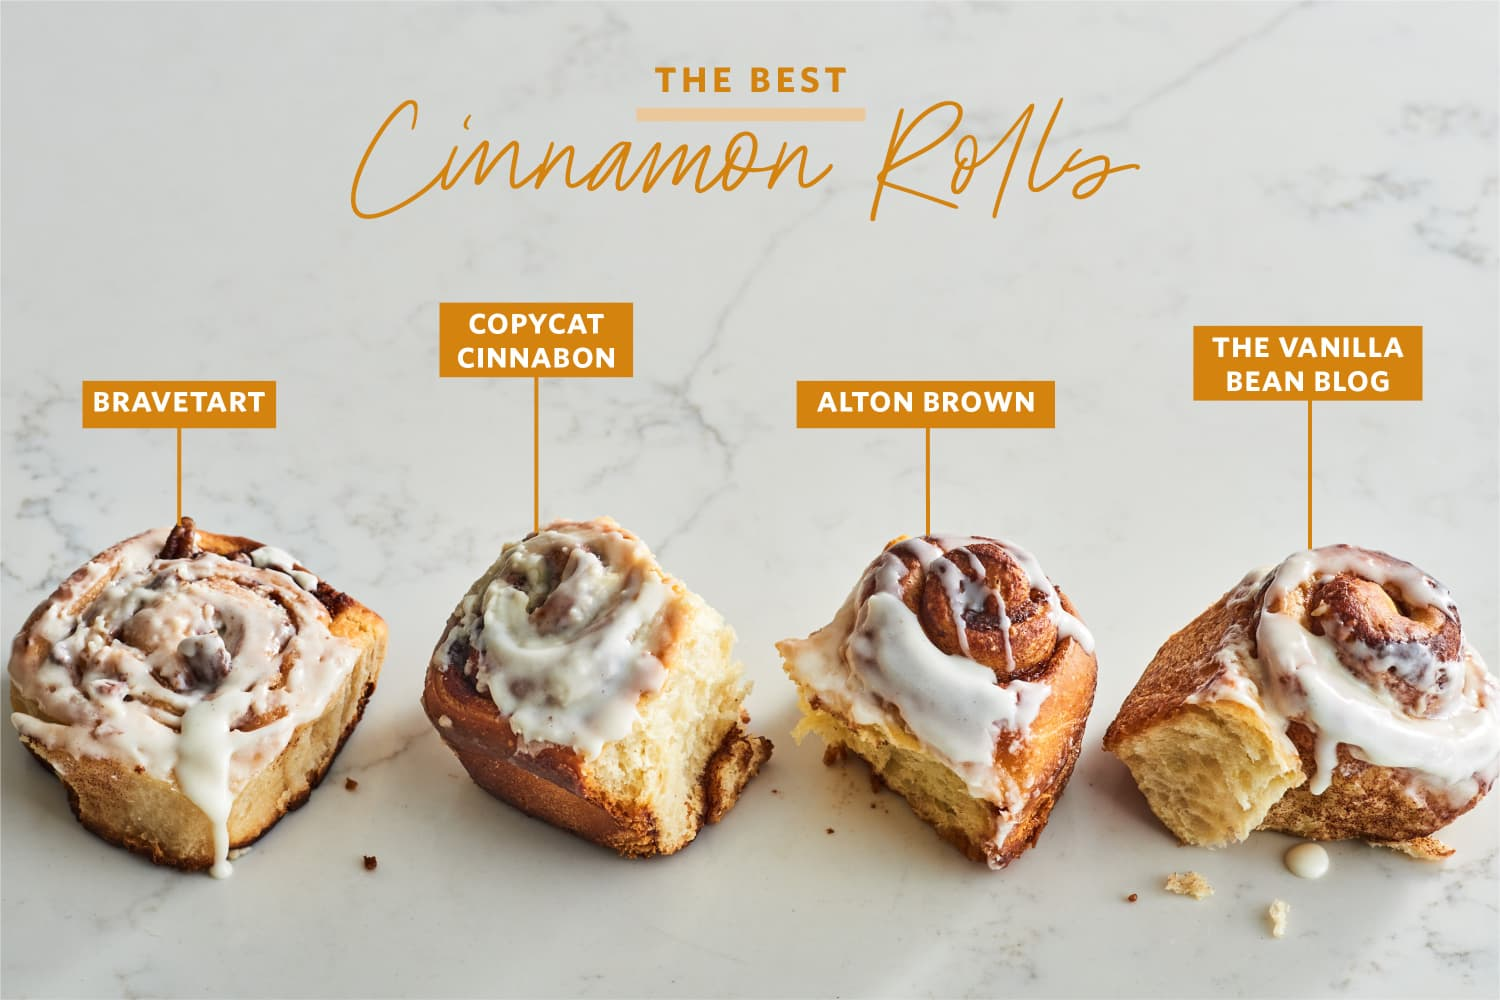 We Tried 4 Famous Cinnamon Roll Recipes and Found a Clear Winner